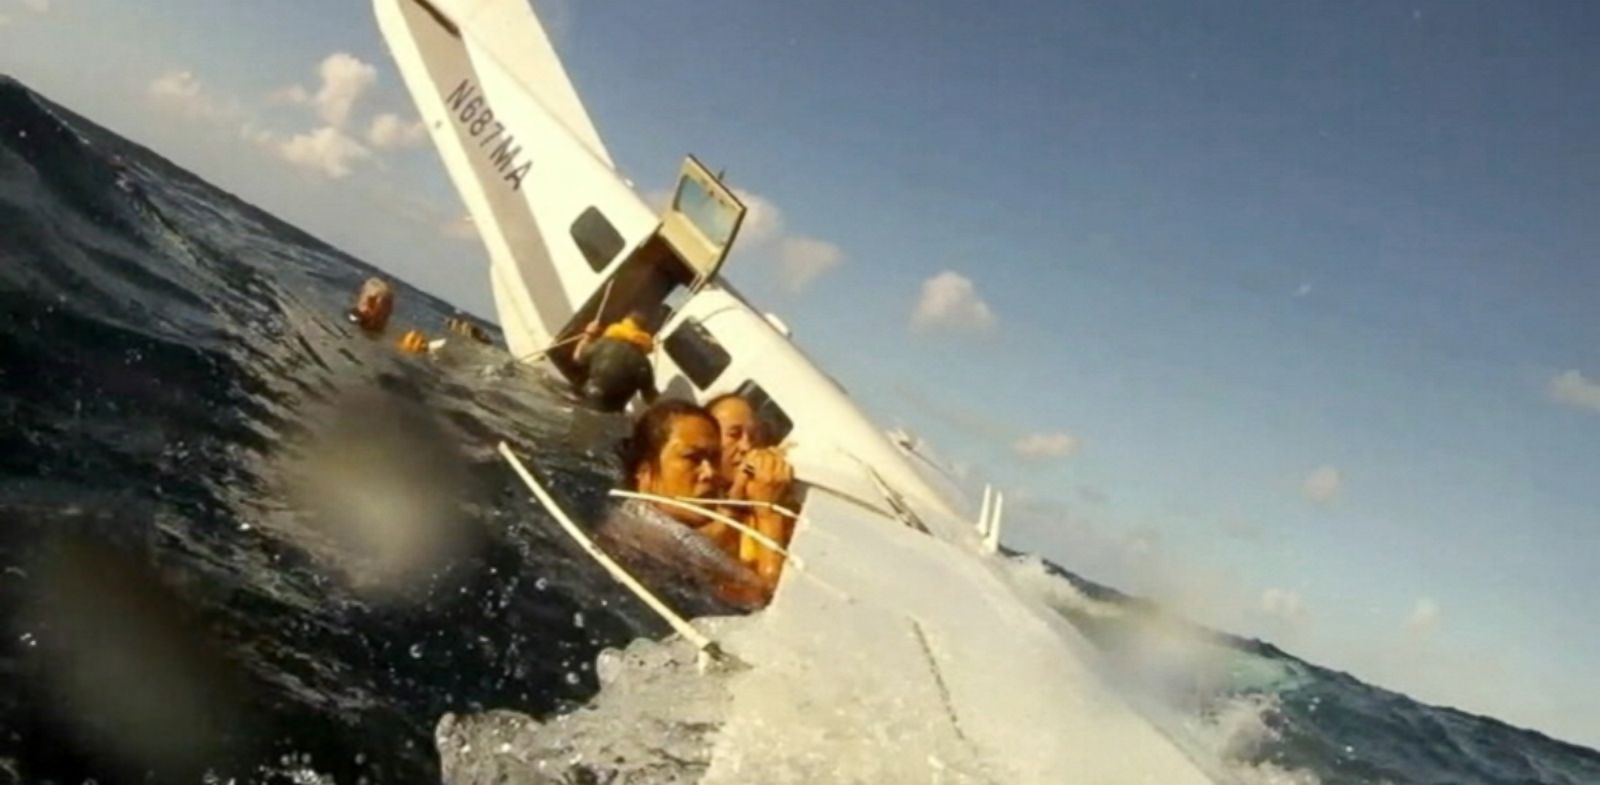 PHOTO: Passengers cling to the planes wing after it crashed into the water off the coast of Hawaii on Dec. 11, 2013.